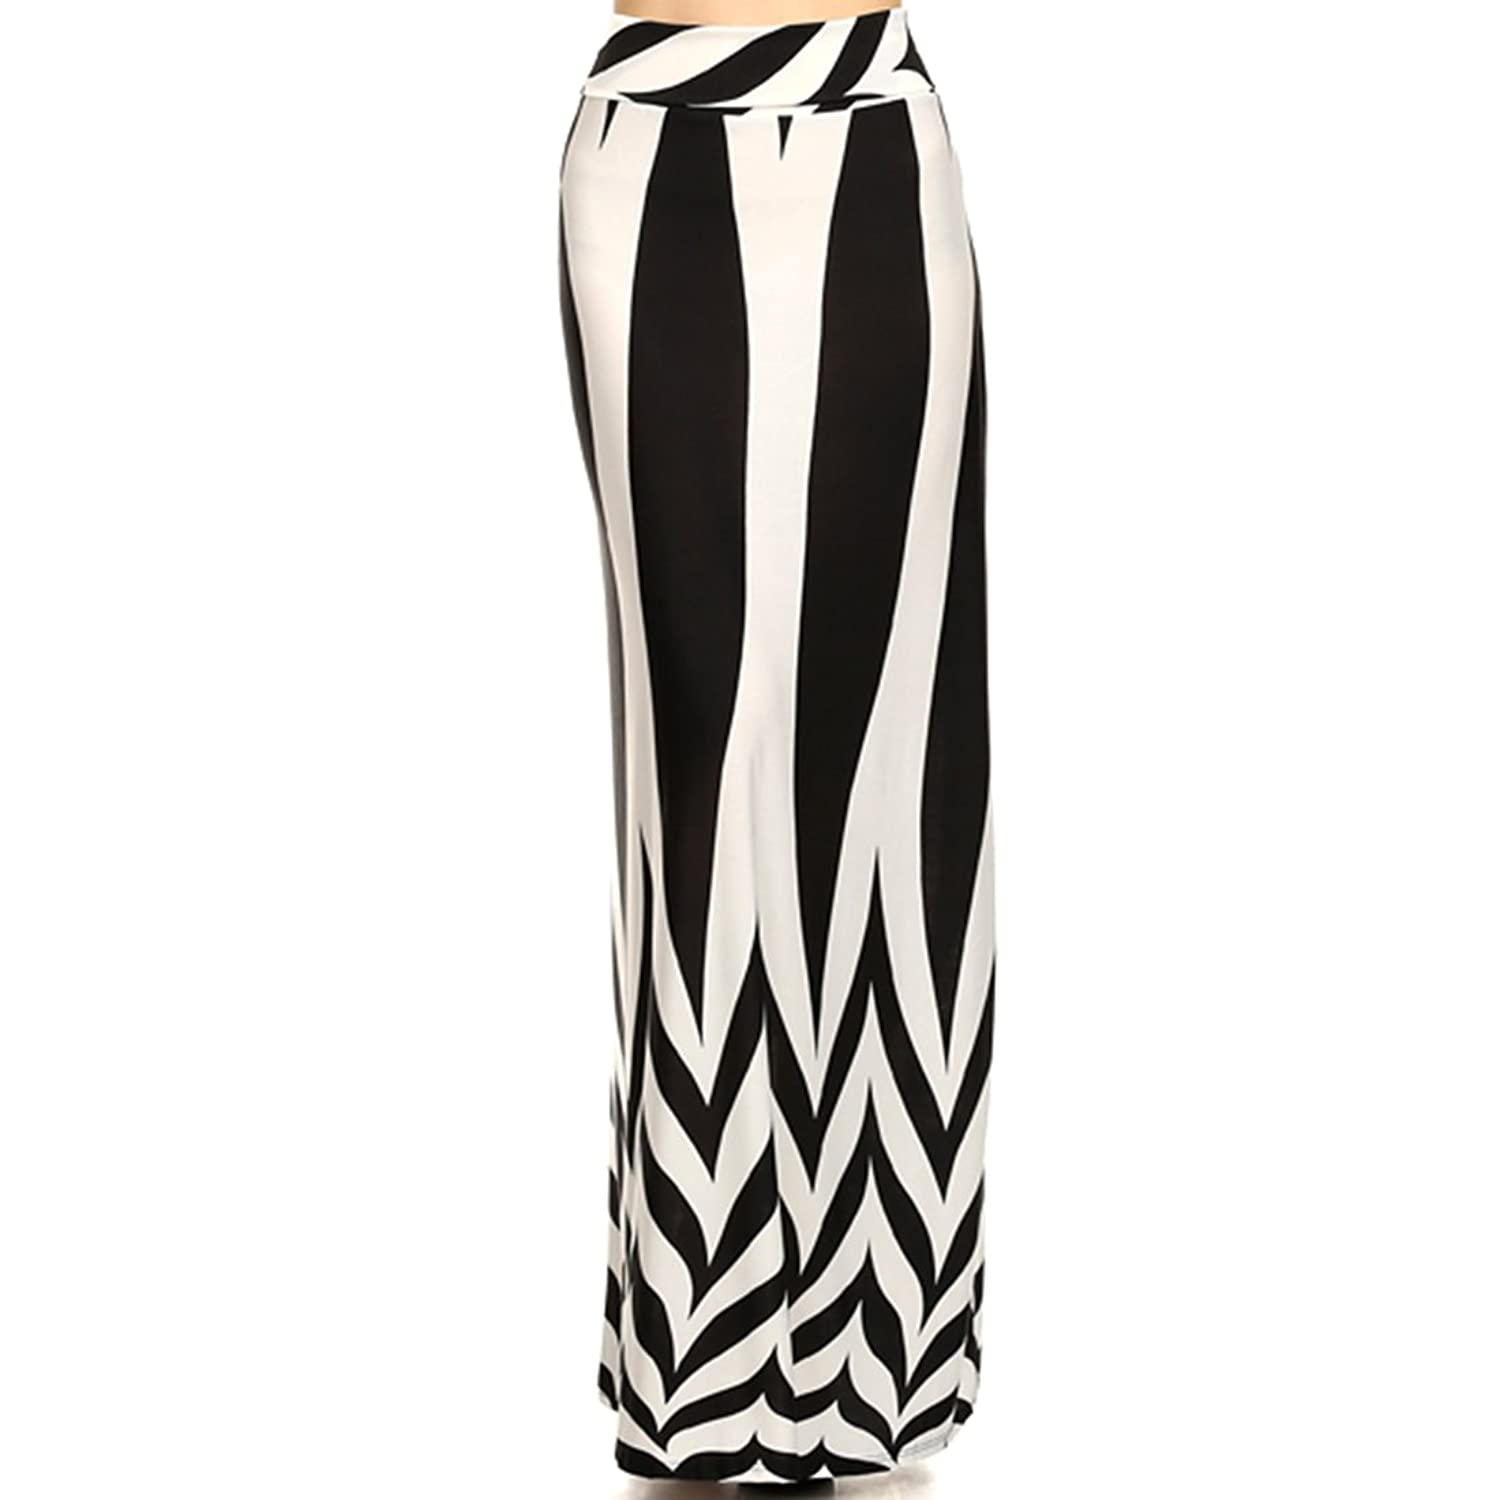 Black and White Striped with Zig Zag Pattern Maxi Skirt, Size Large